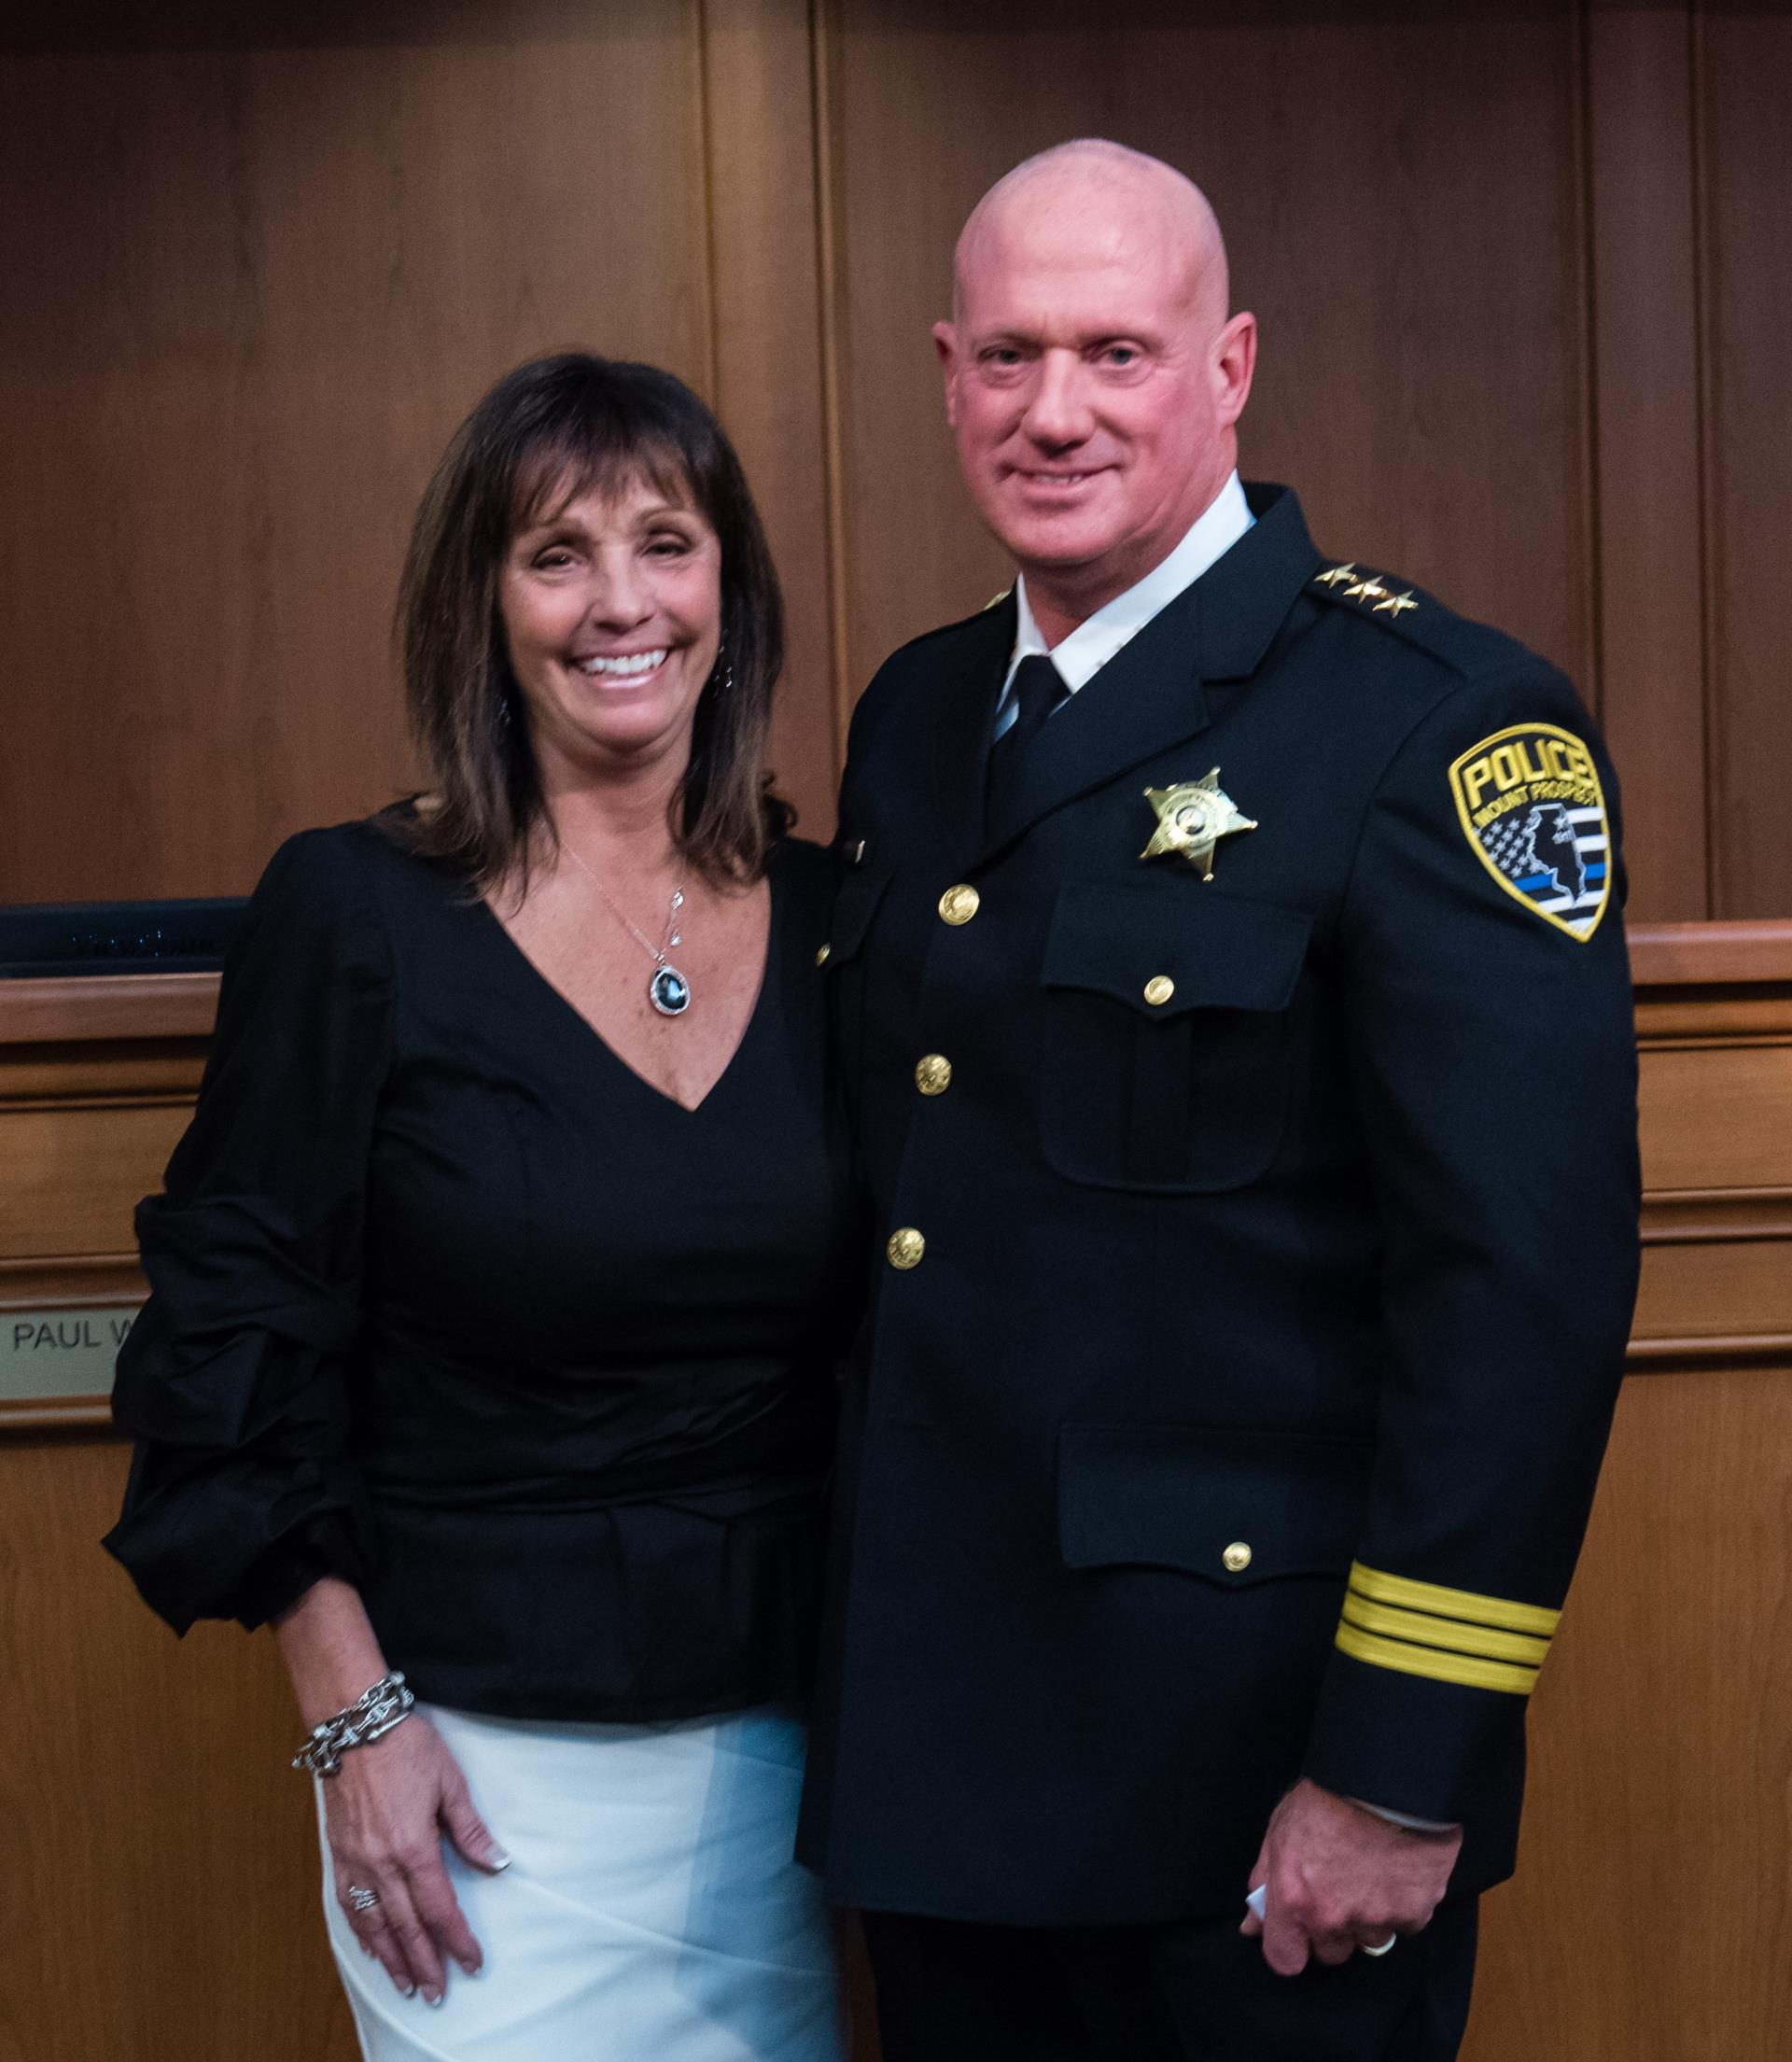 Chief Koziol Swearing-In Ceremony Final-4255